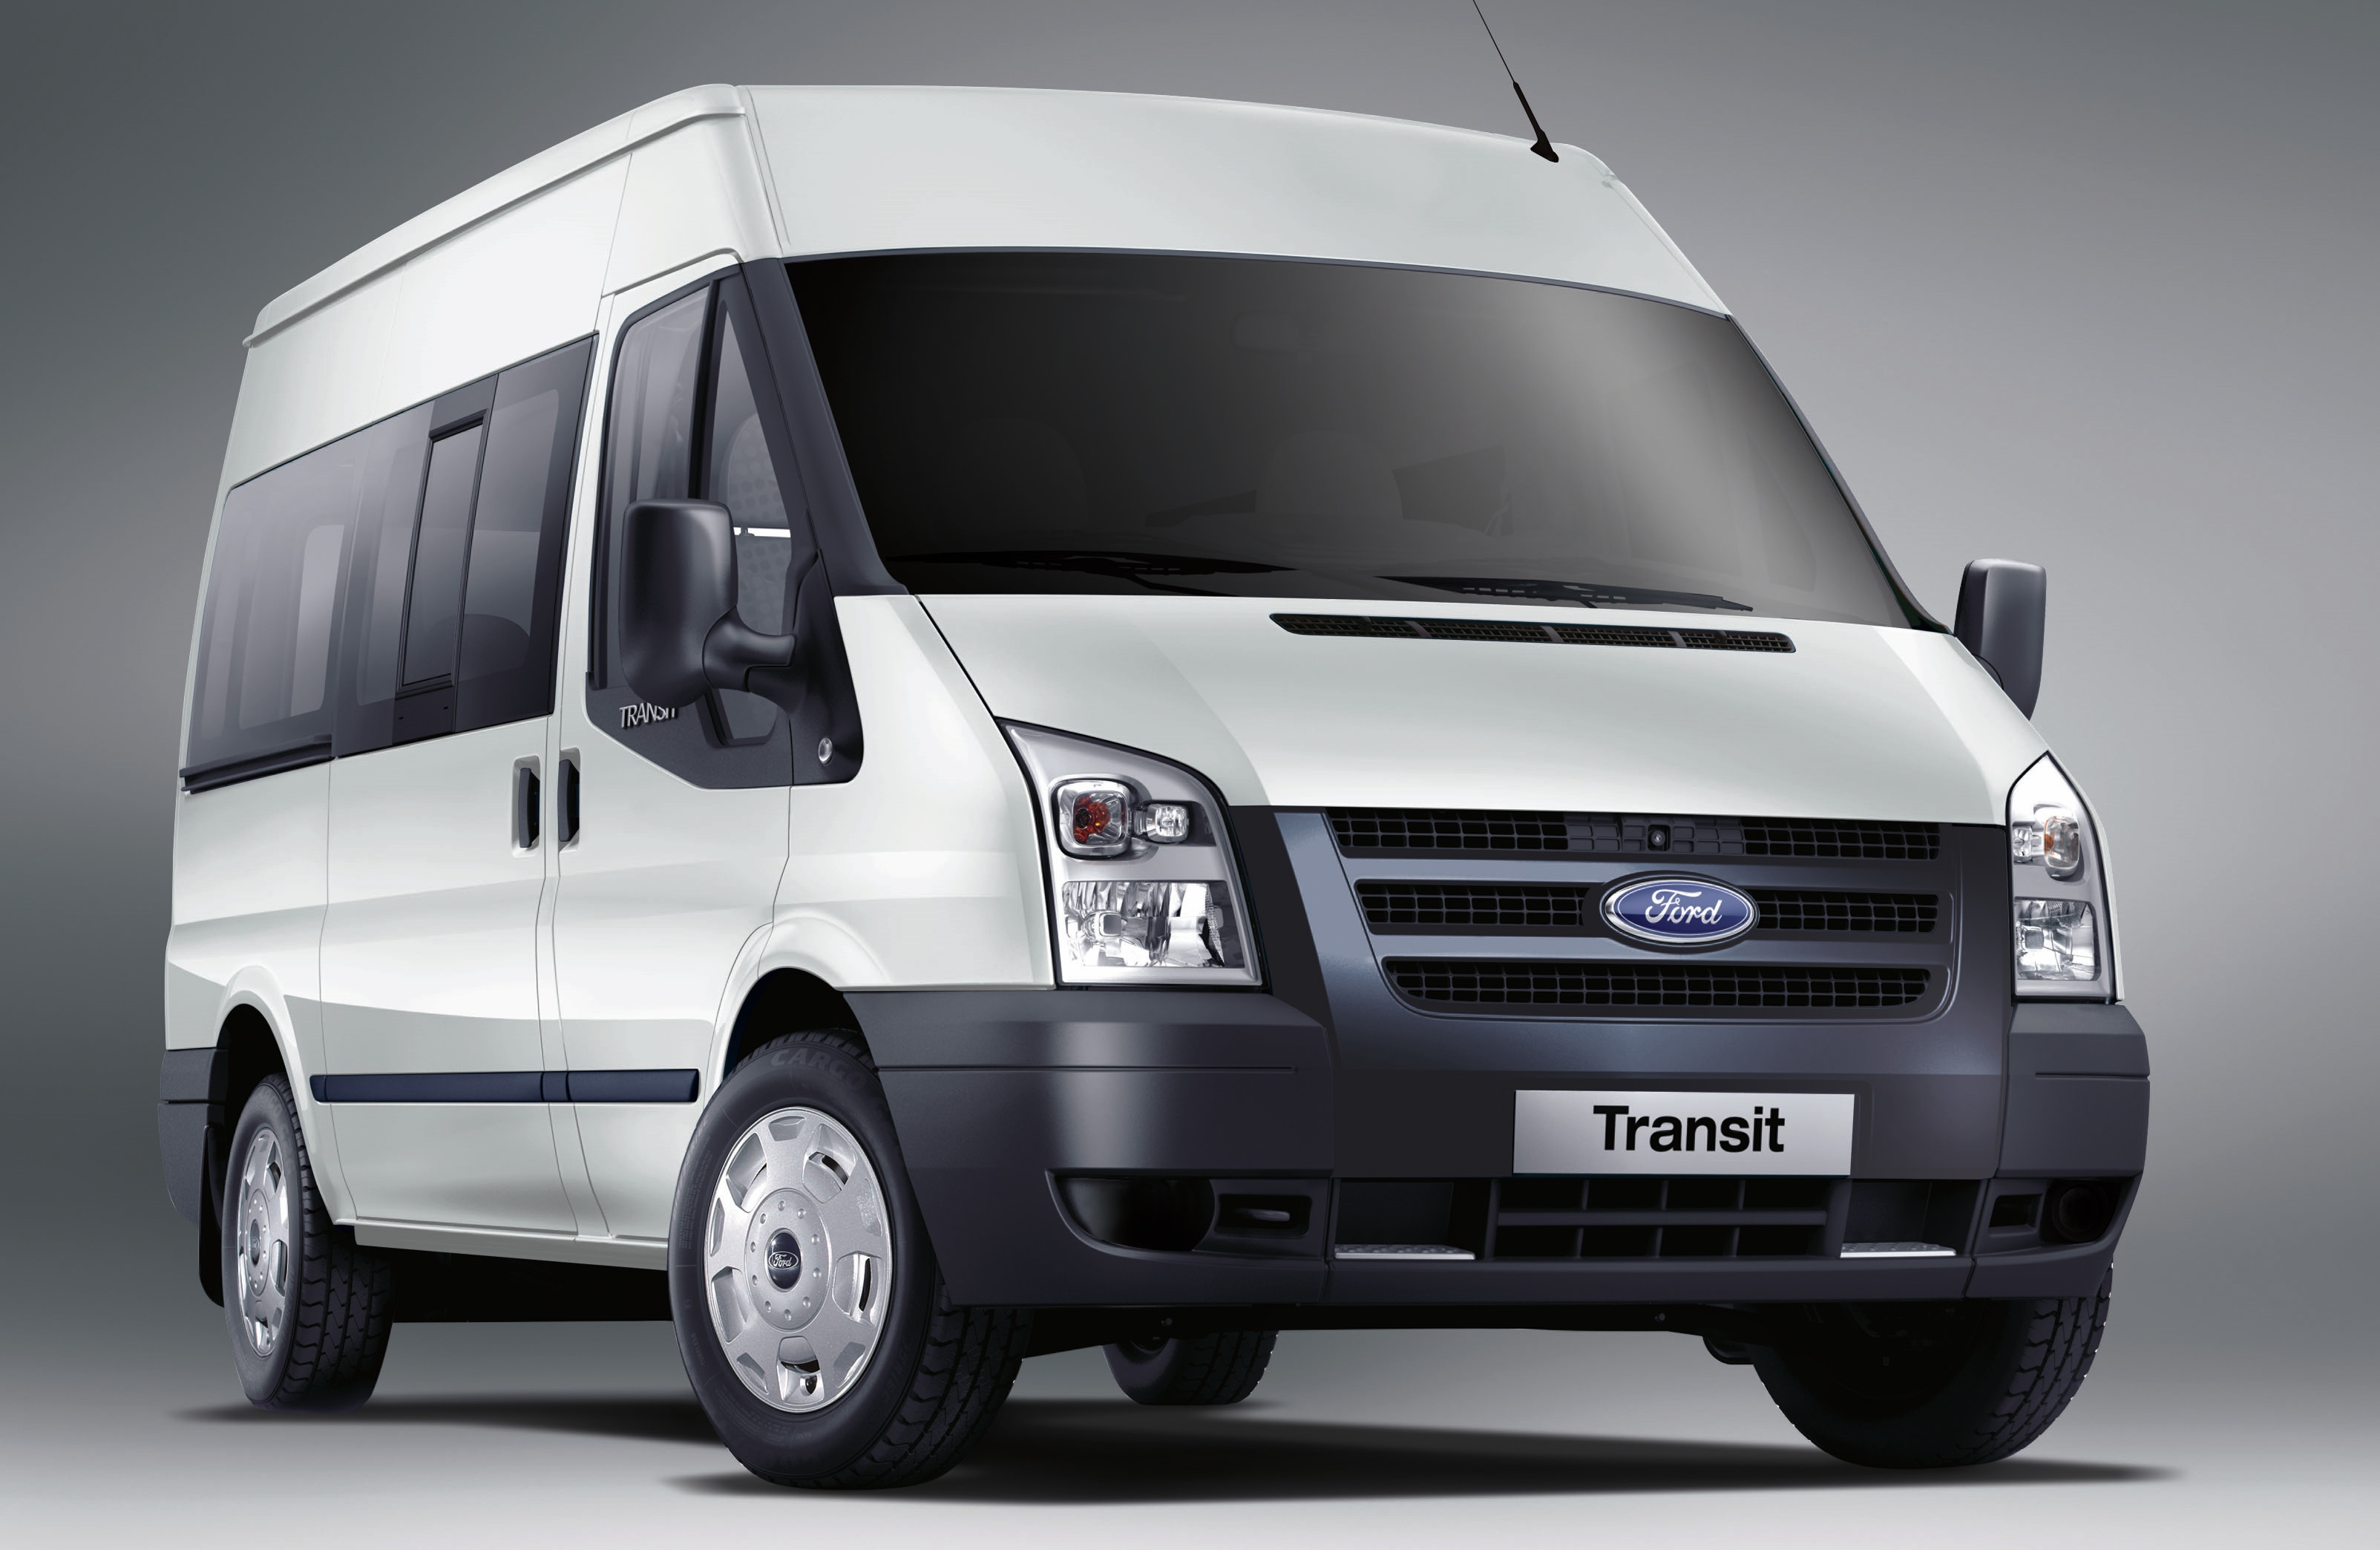 Ford Transit to be locally assembled in 2014 – fifth-gen model, two